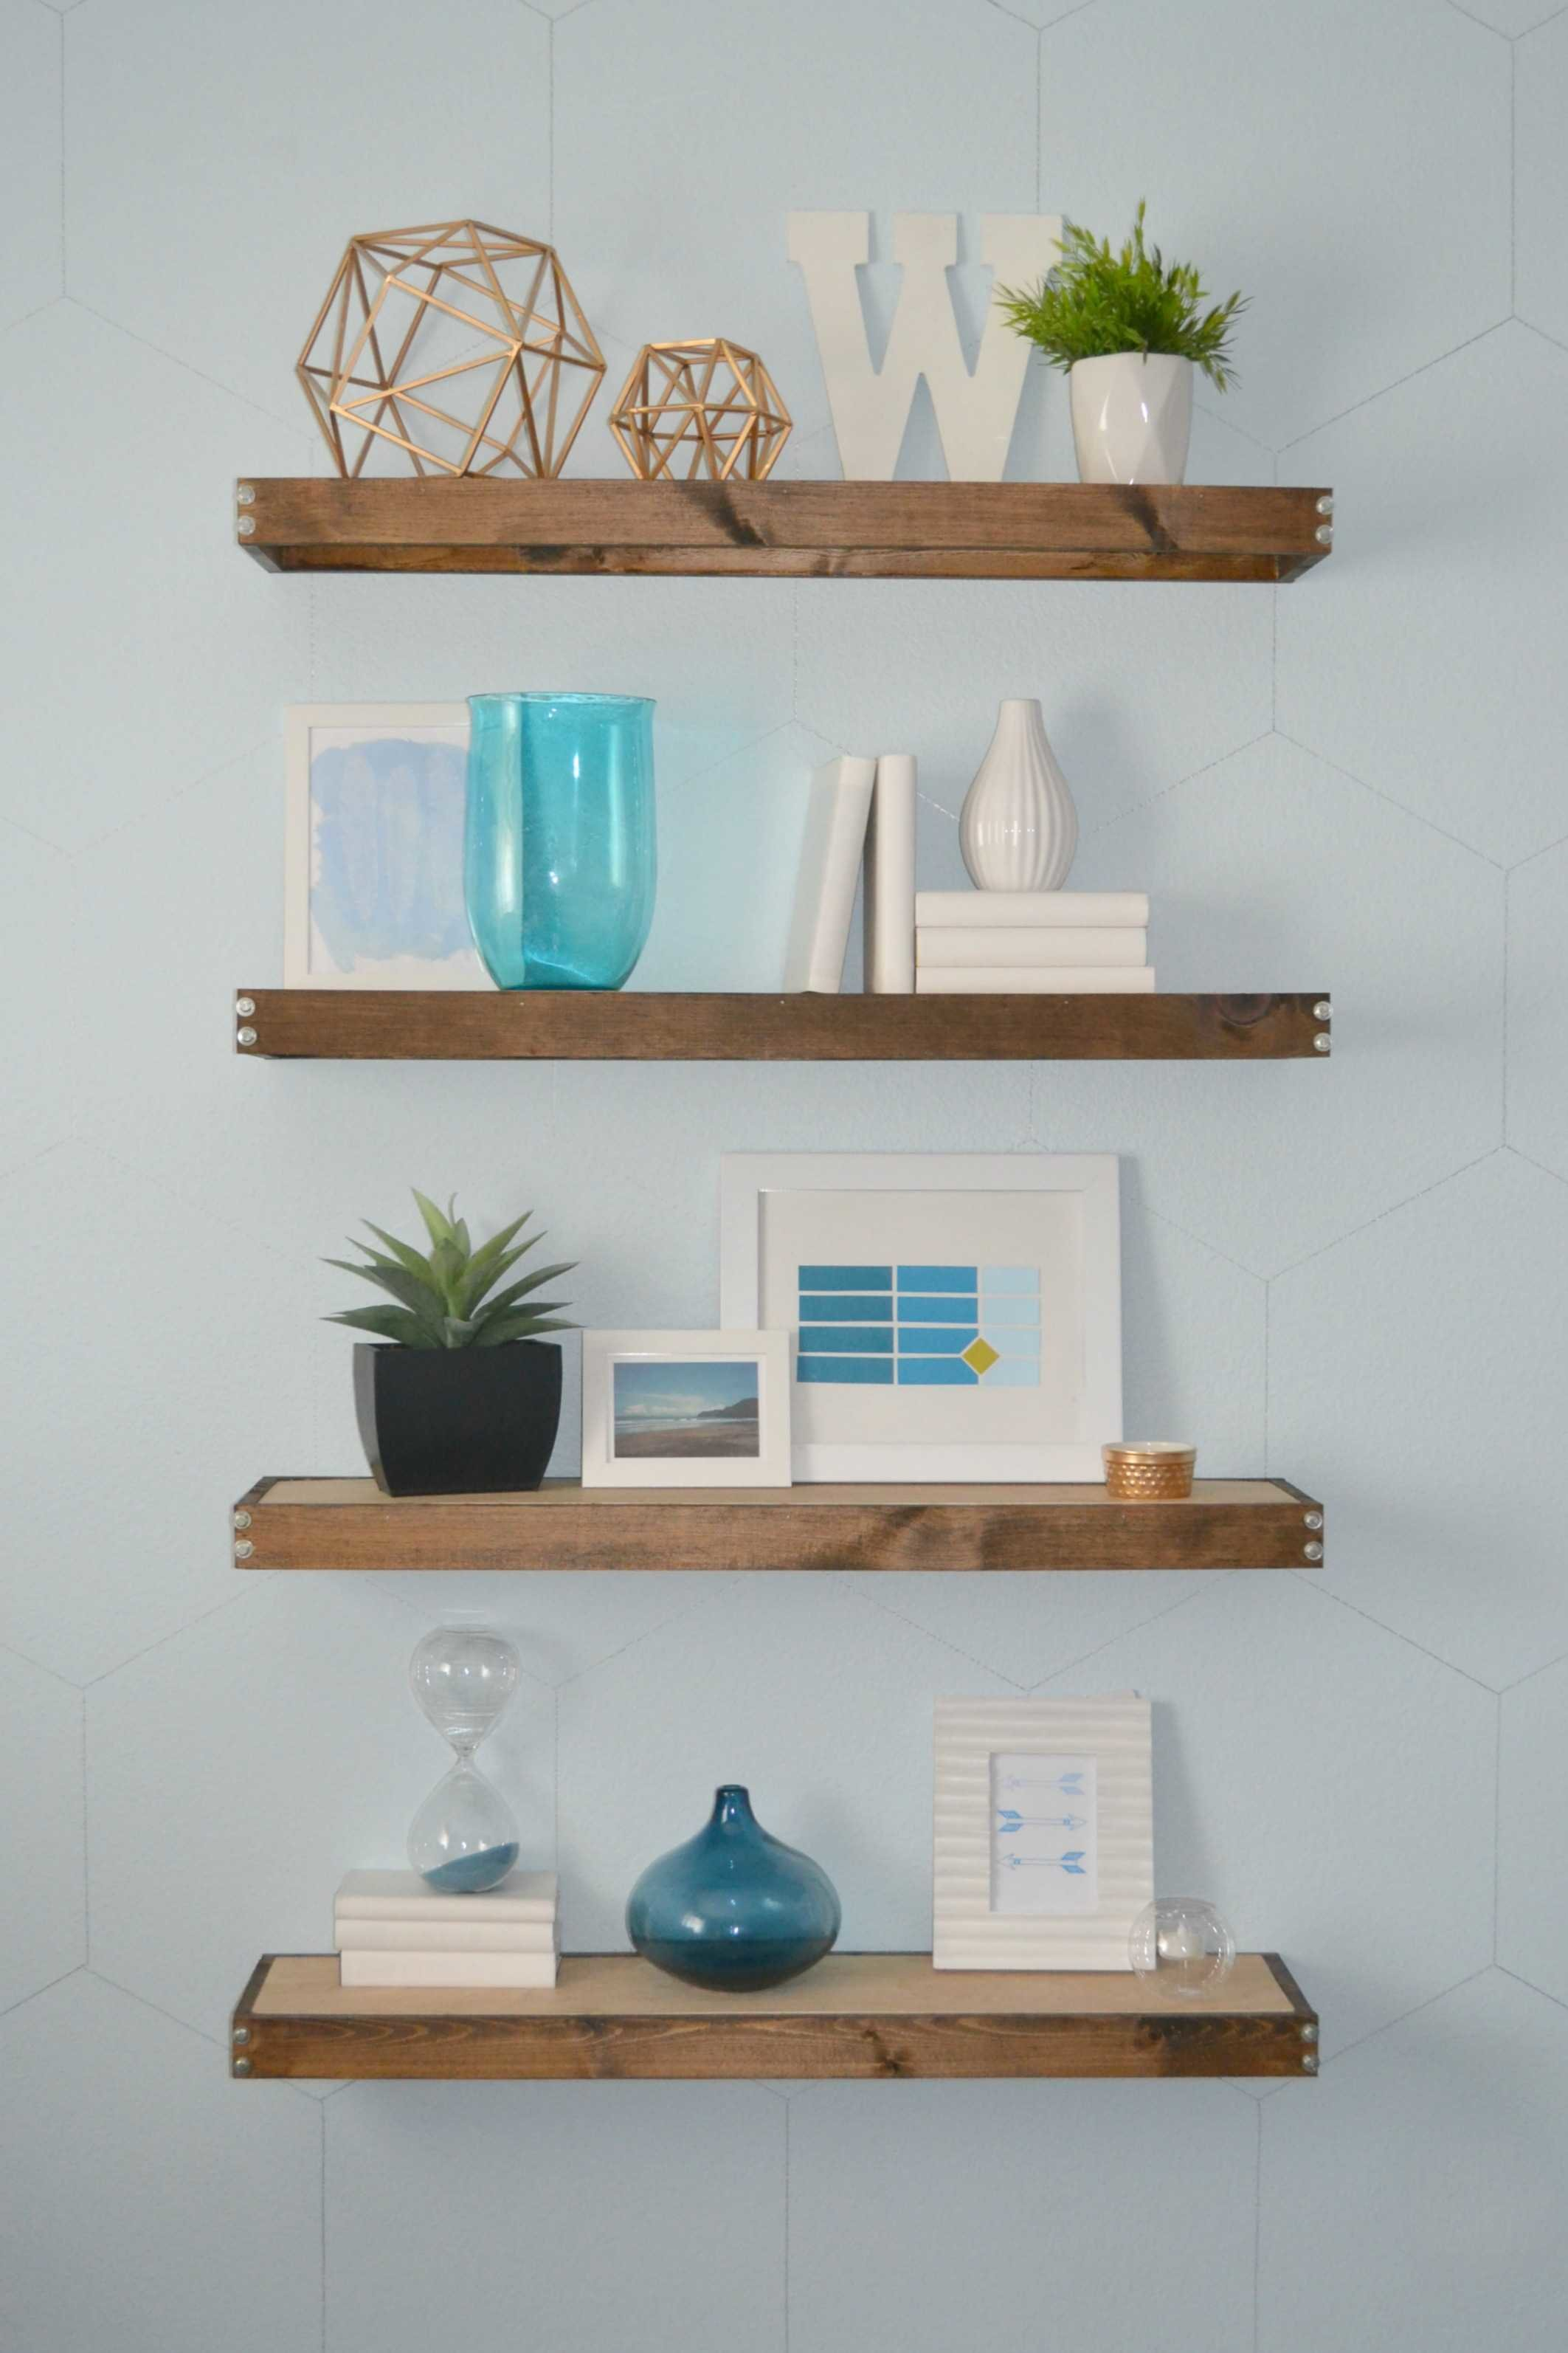 diy rustic modern floating shelves part one bookshelf plans aluminum shelf wood wall shelving units small desktop desk ikea hanging iron letters kmart build your own tier bathroom